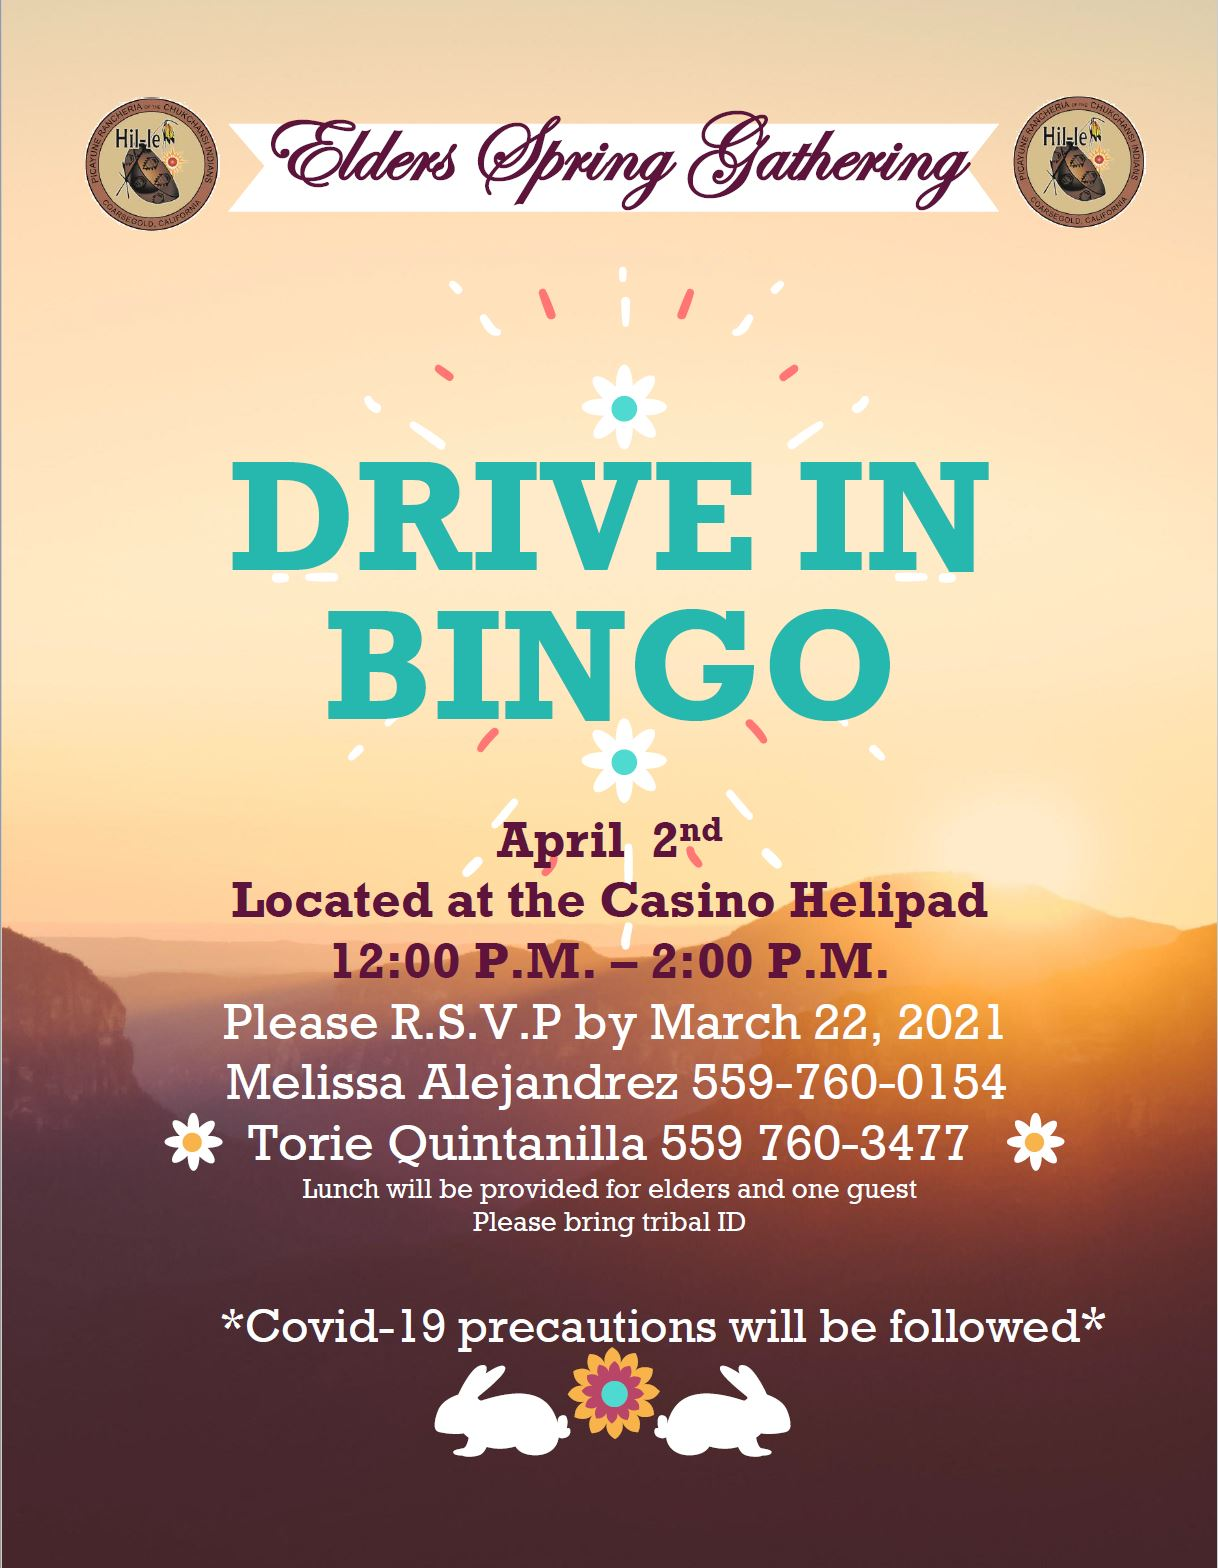 Elders Spring Gathering (Drive in Bingo)